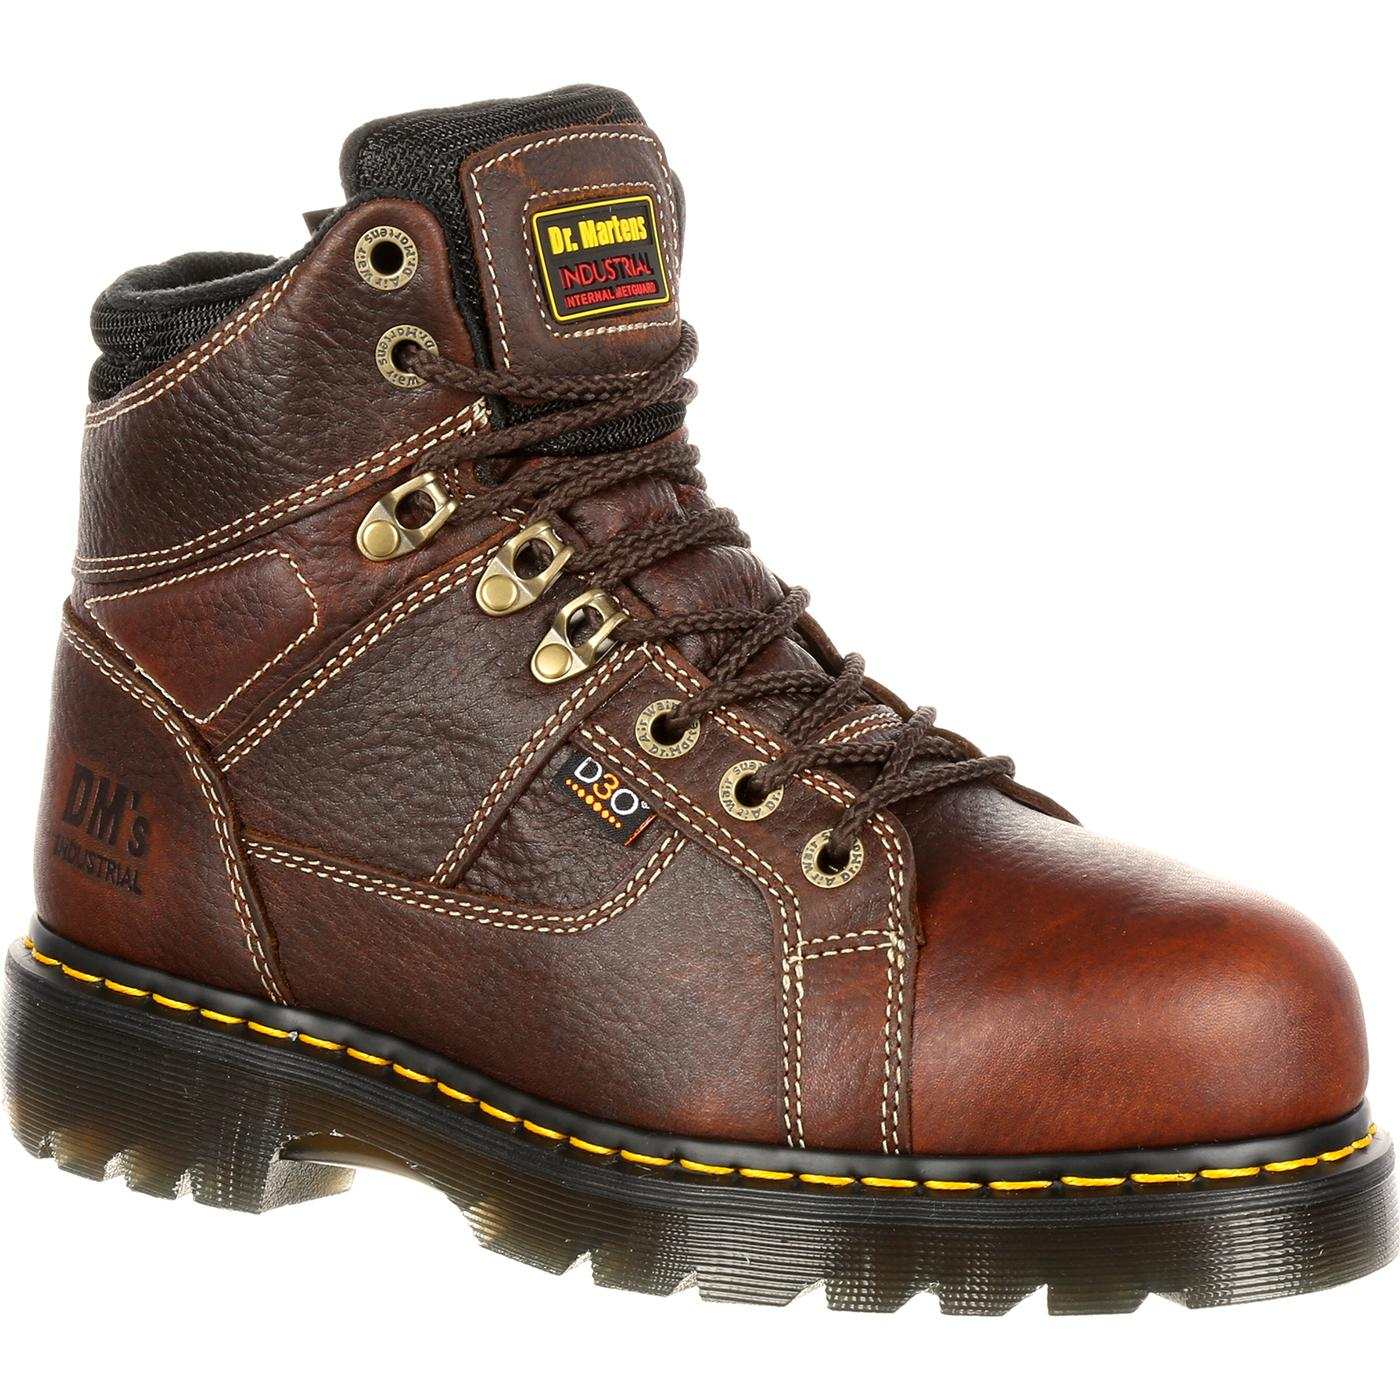 a87f7225596 Dr. Martens Ironbridge Steel Toe Internal Met Guard Work BootDr. Martens  Ironbridge Steel Toe Internal Met Guard Work Boot,